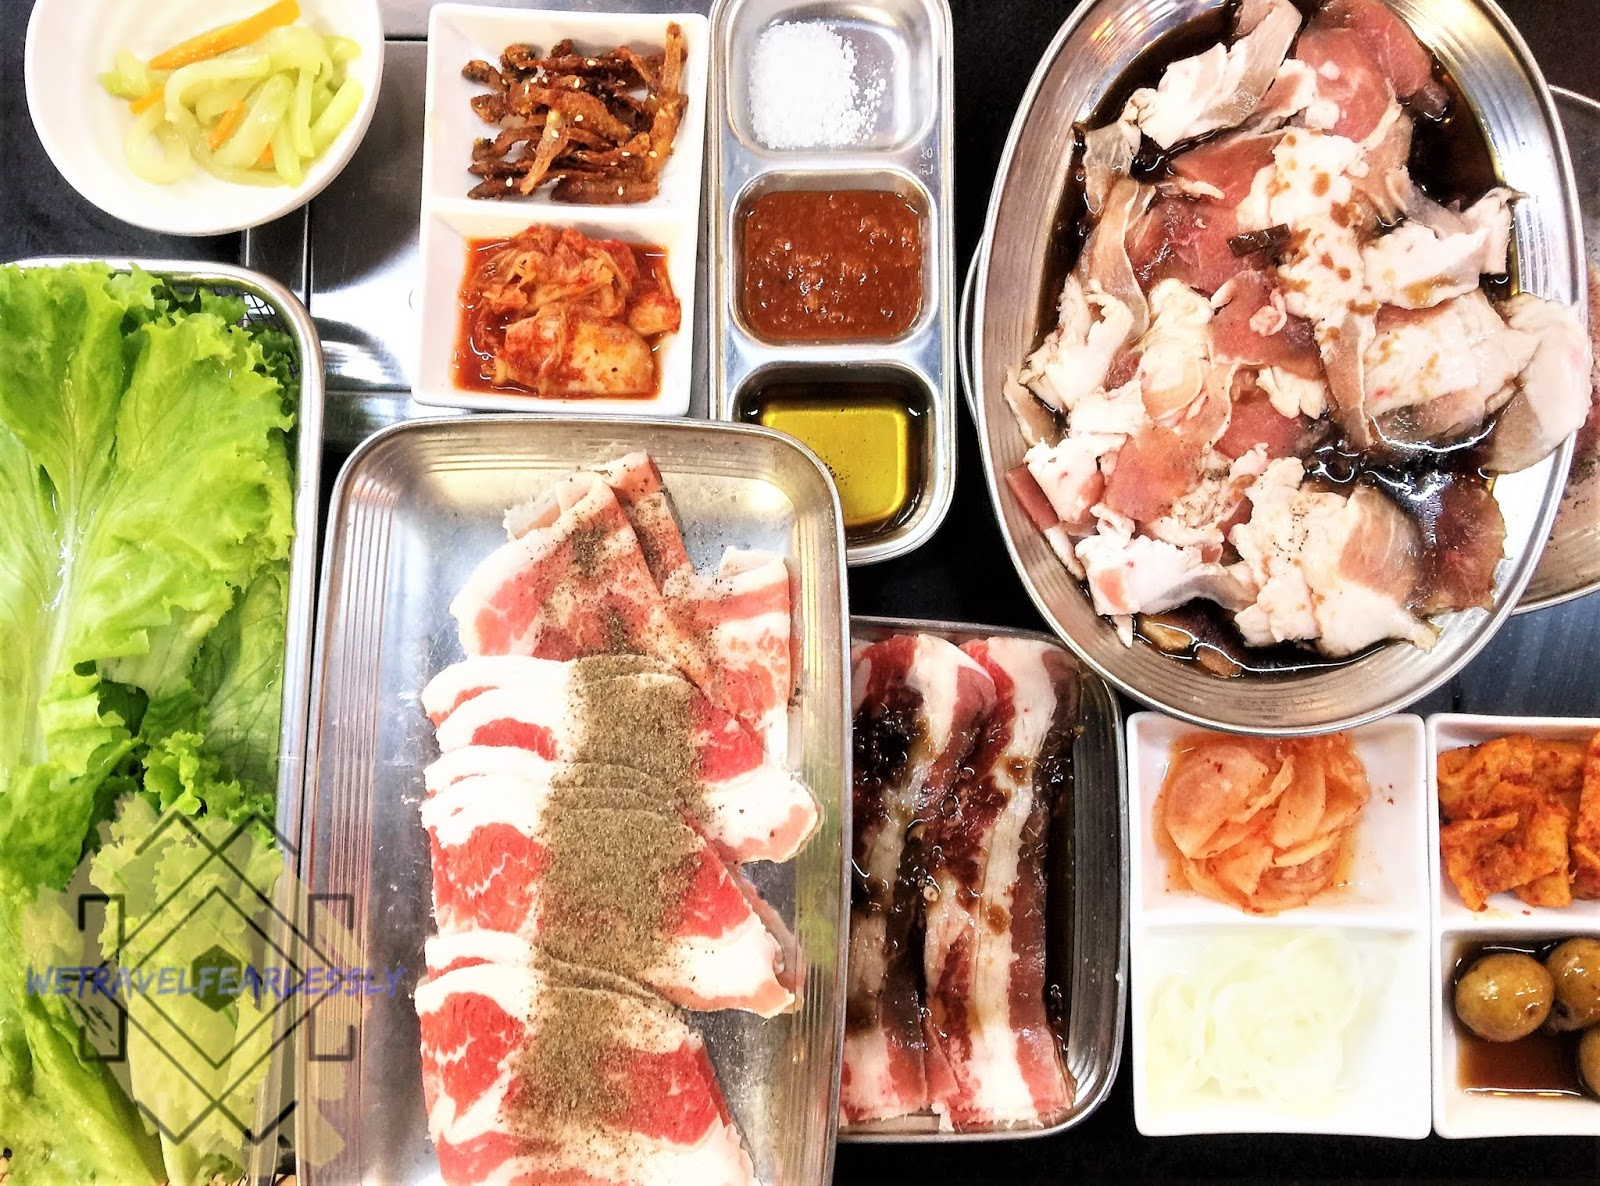 Samgyeopmasarap in SM Marikina - WTF Review